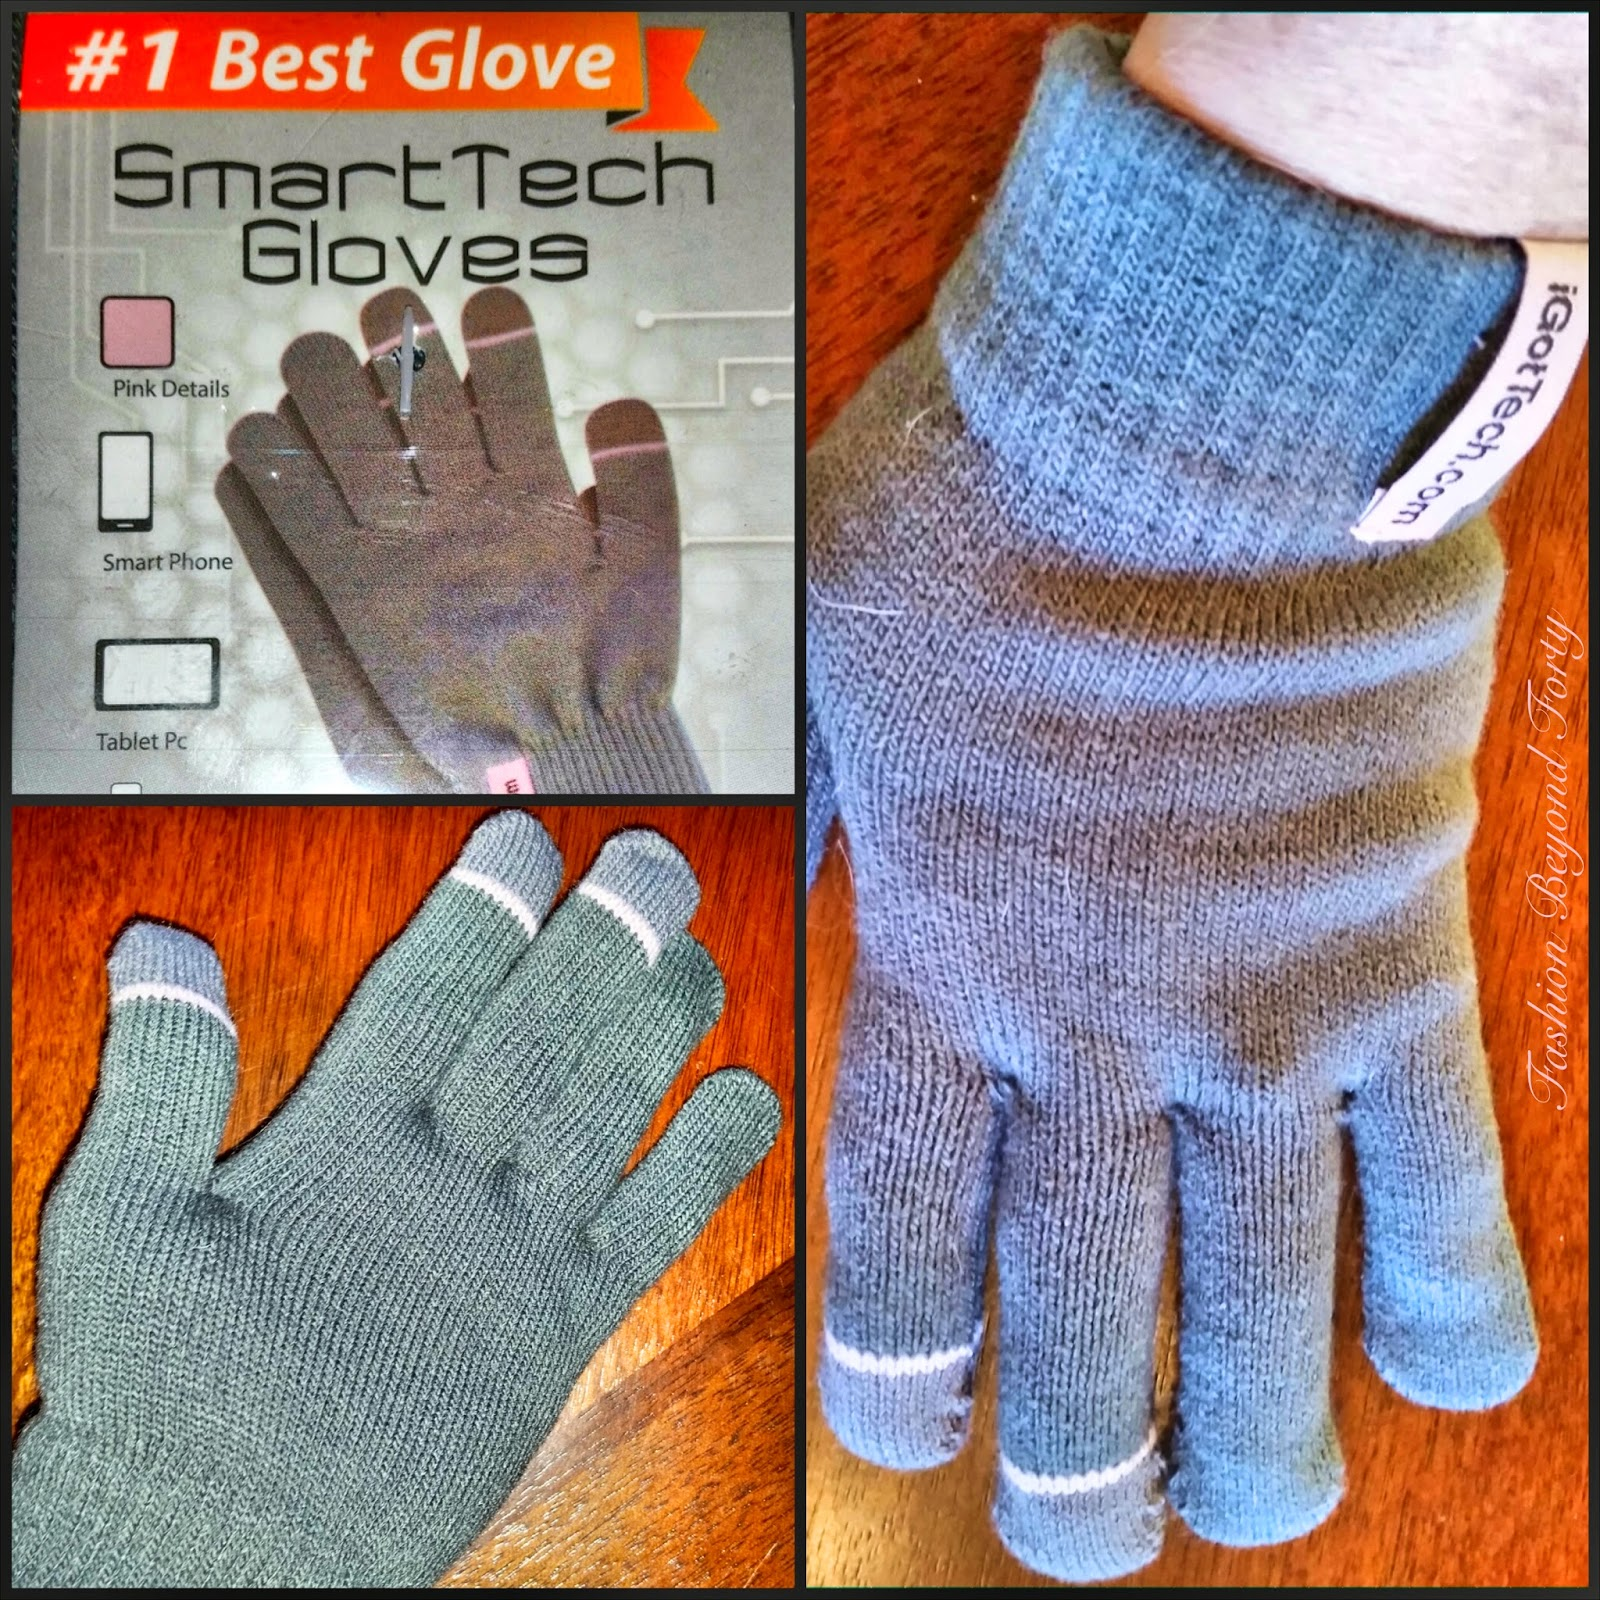 iGotTech Texting Gloves Review